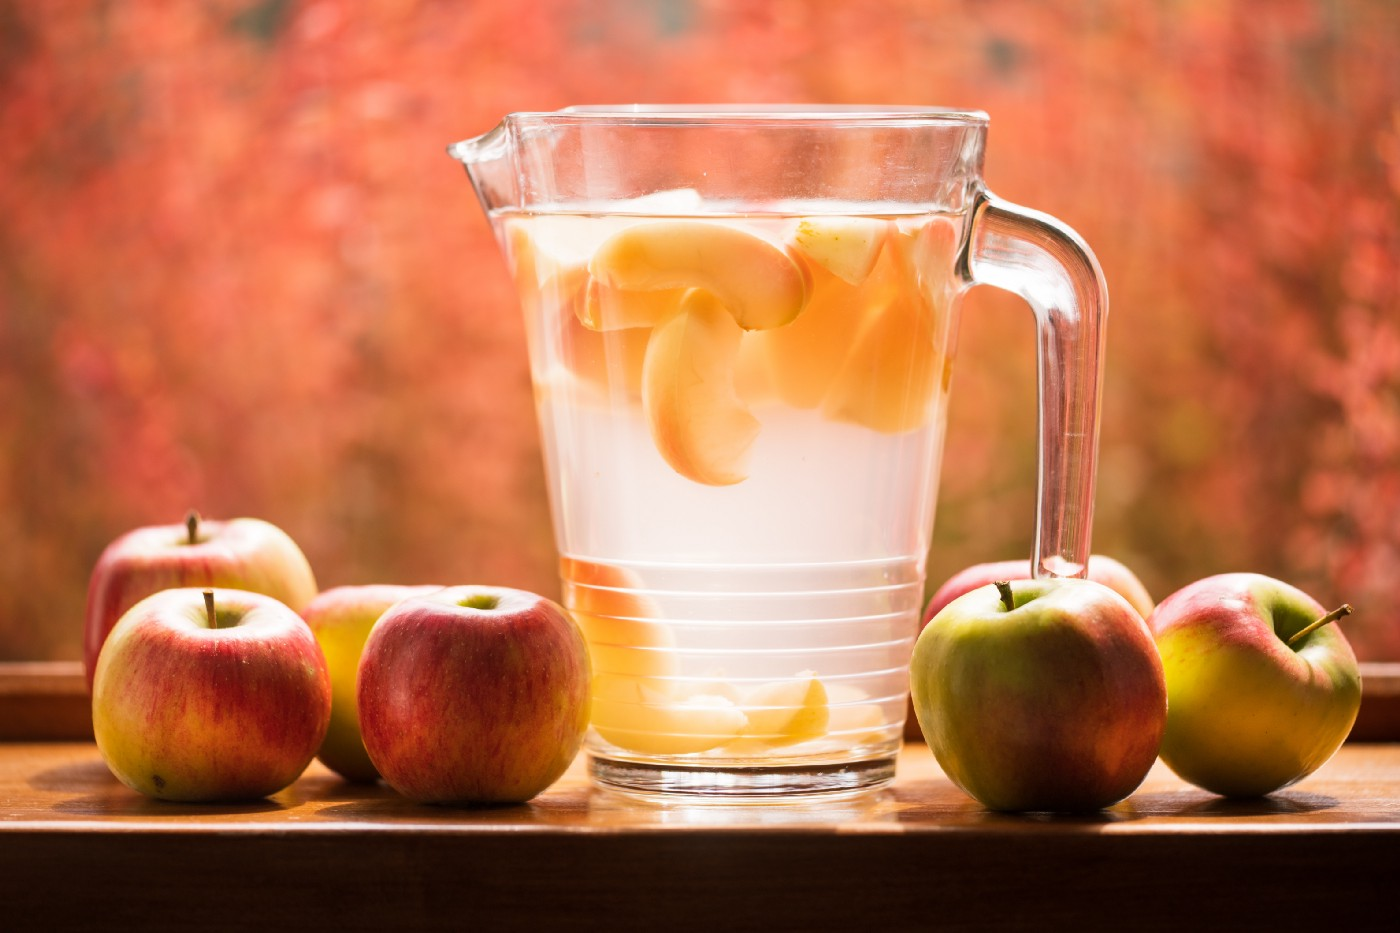 Water infused with sliced apples